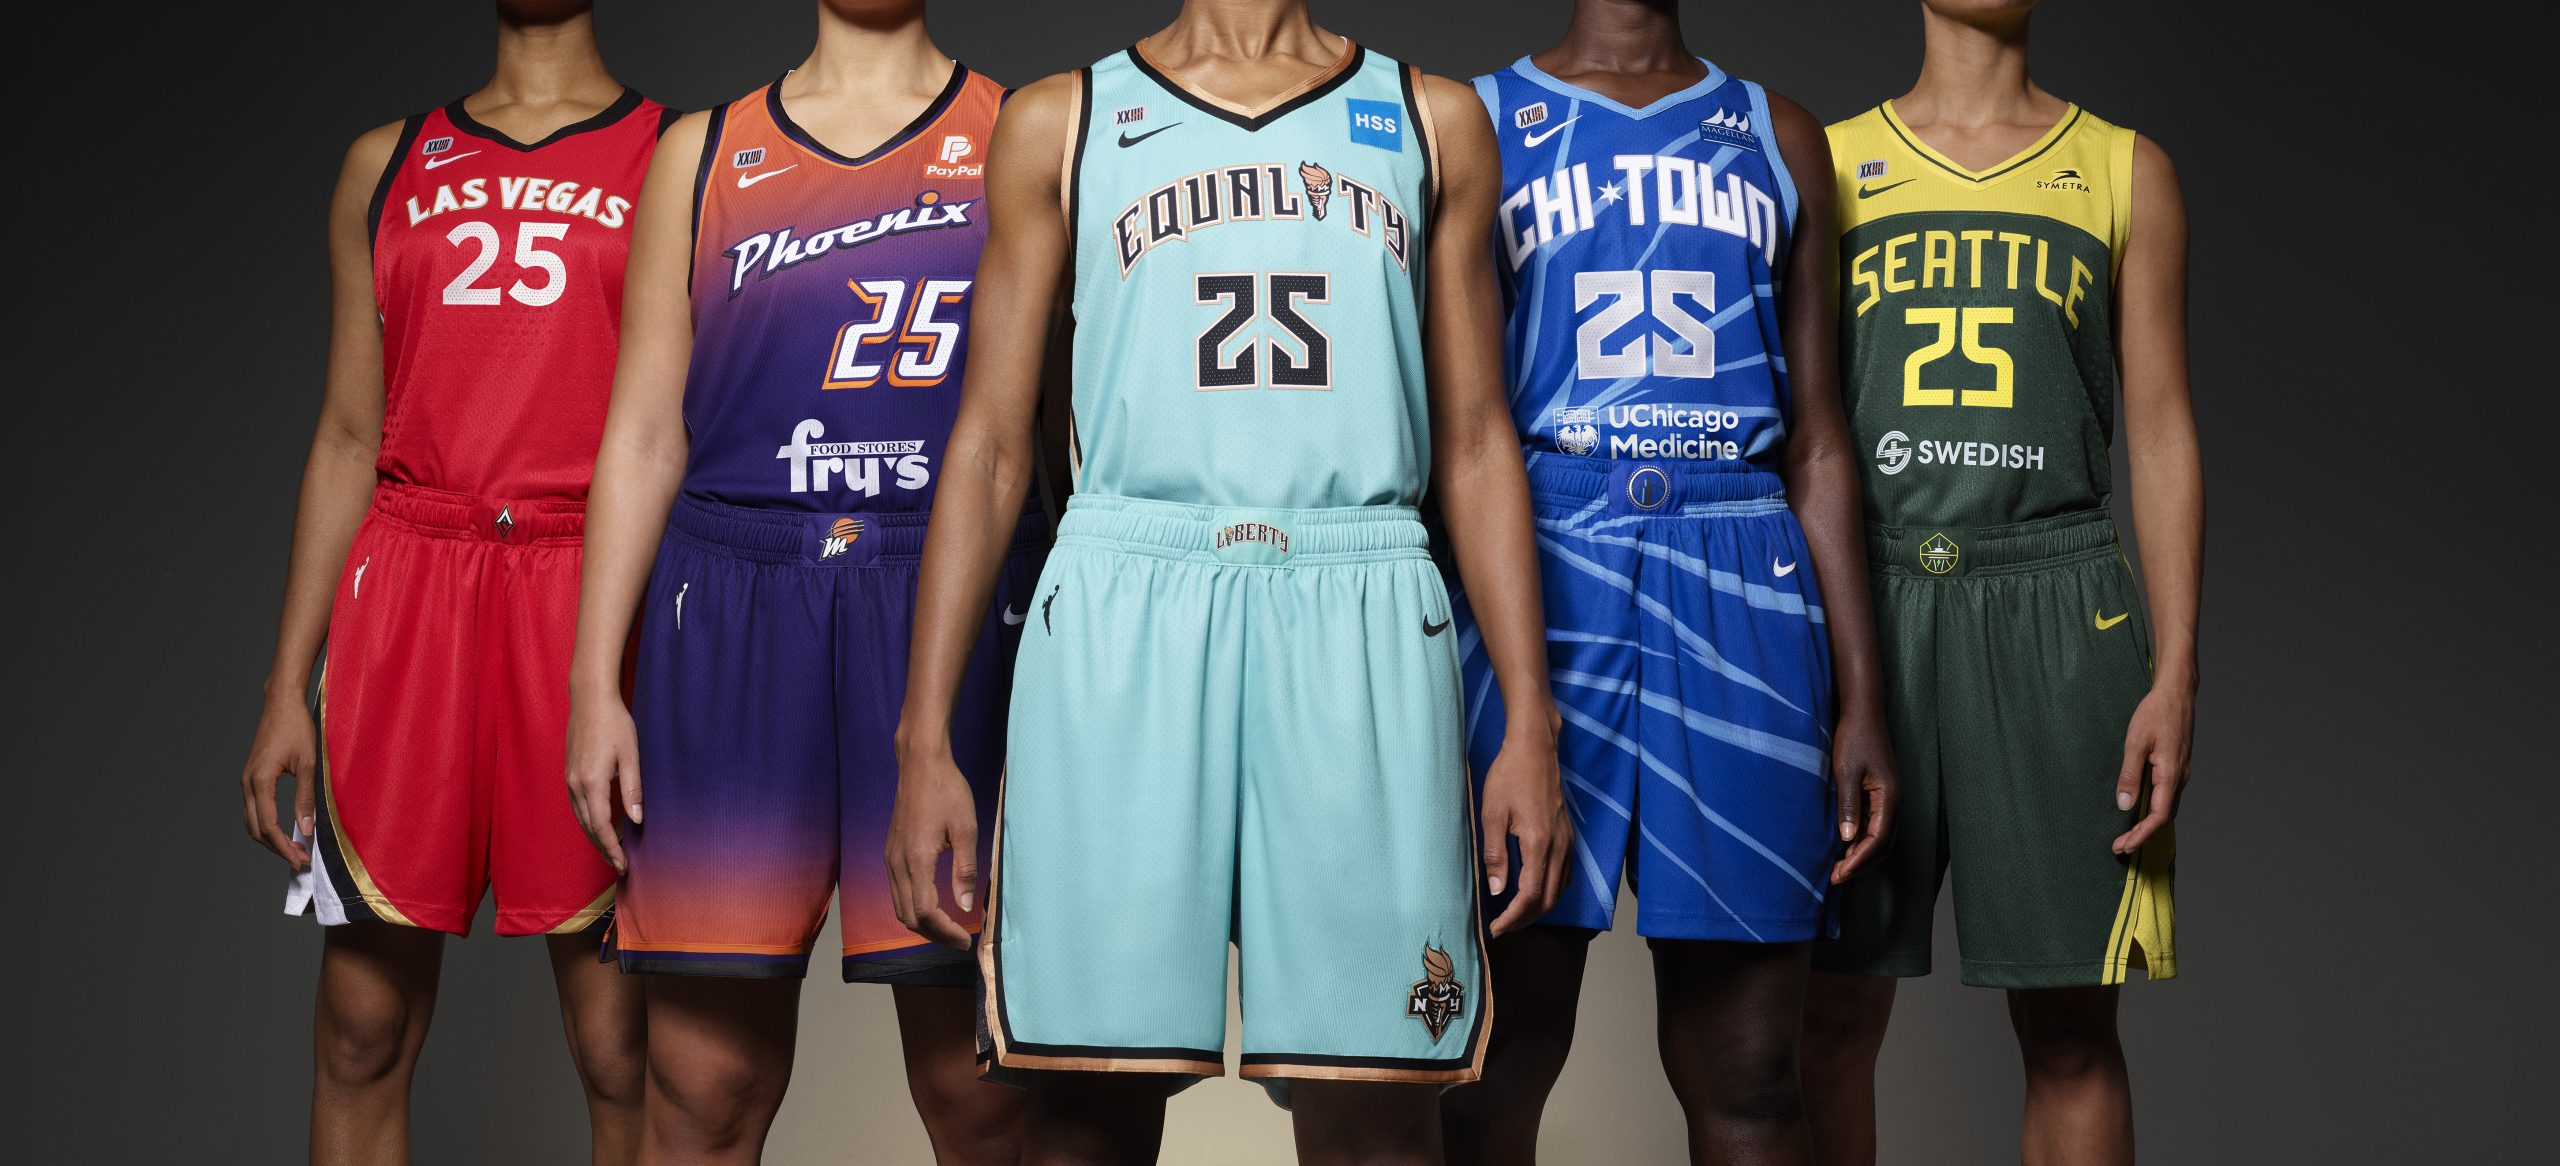 Nike Teams With Wnba To Create the Most Comprehensive Women's Basketball Offering For Her